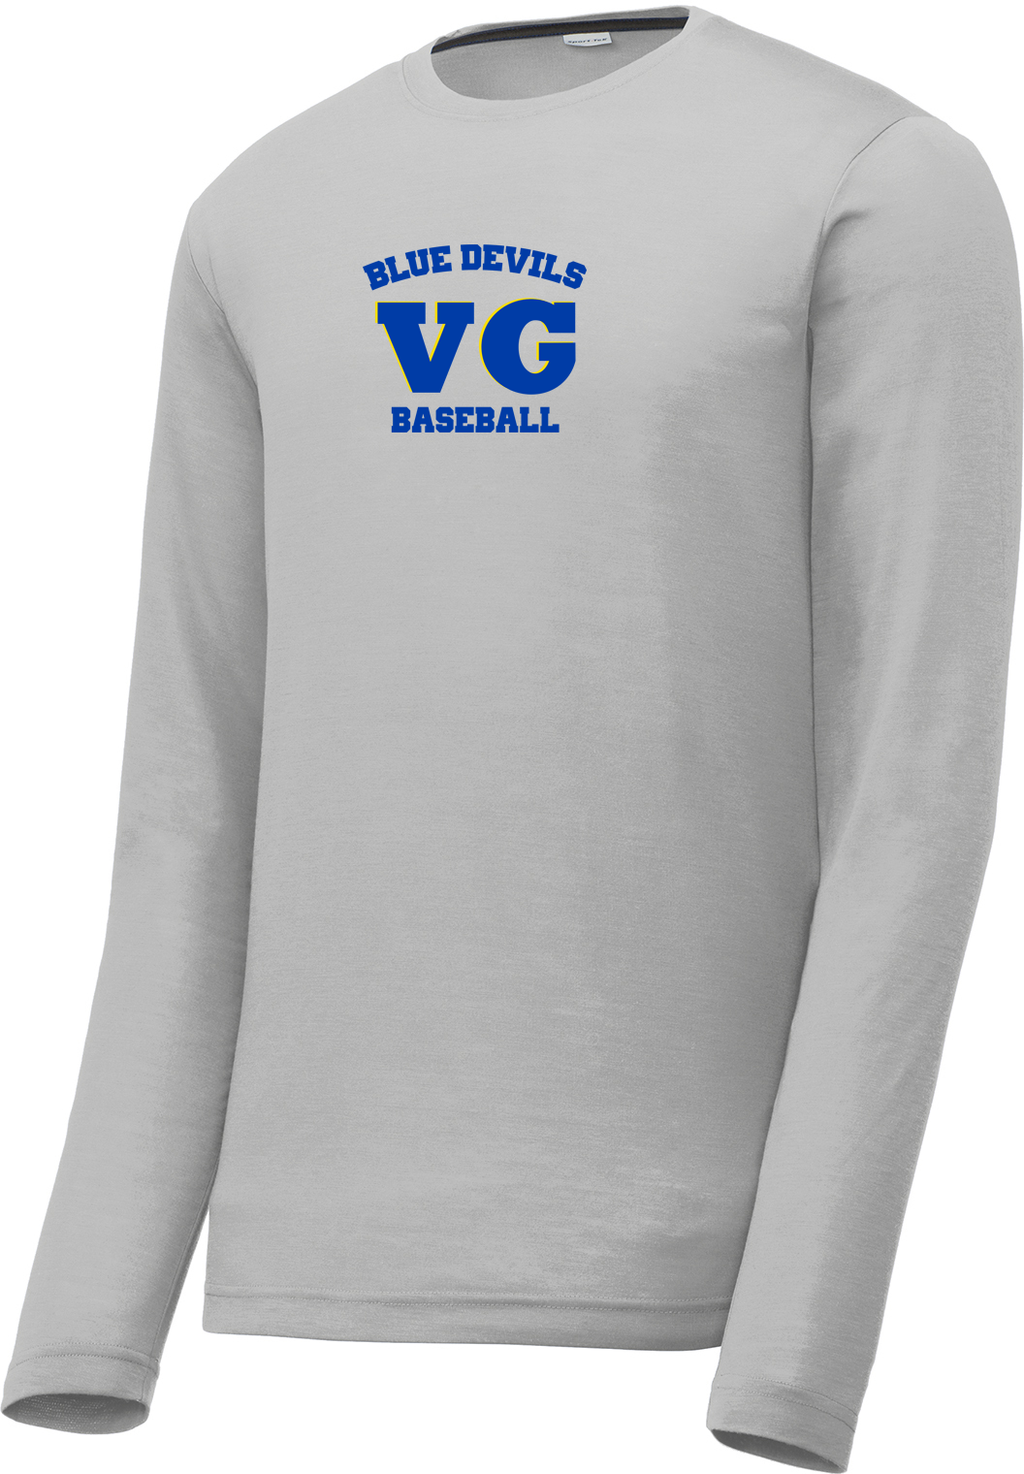 Blue Devils Baseball Long Sleeve CottonTouch Performance Shirt